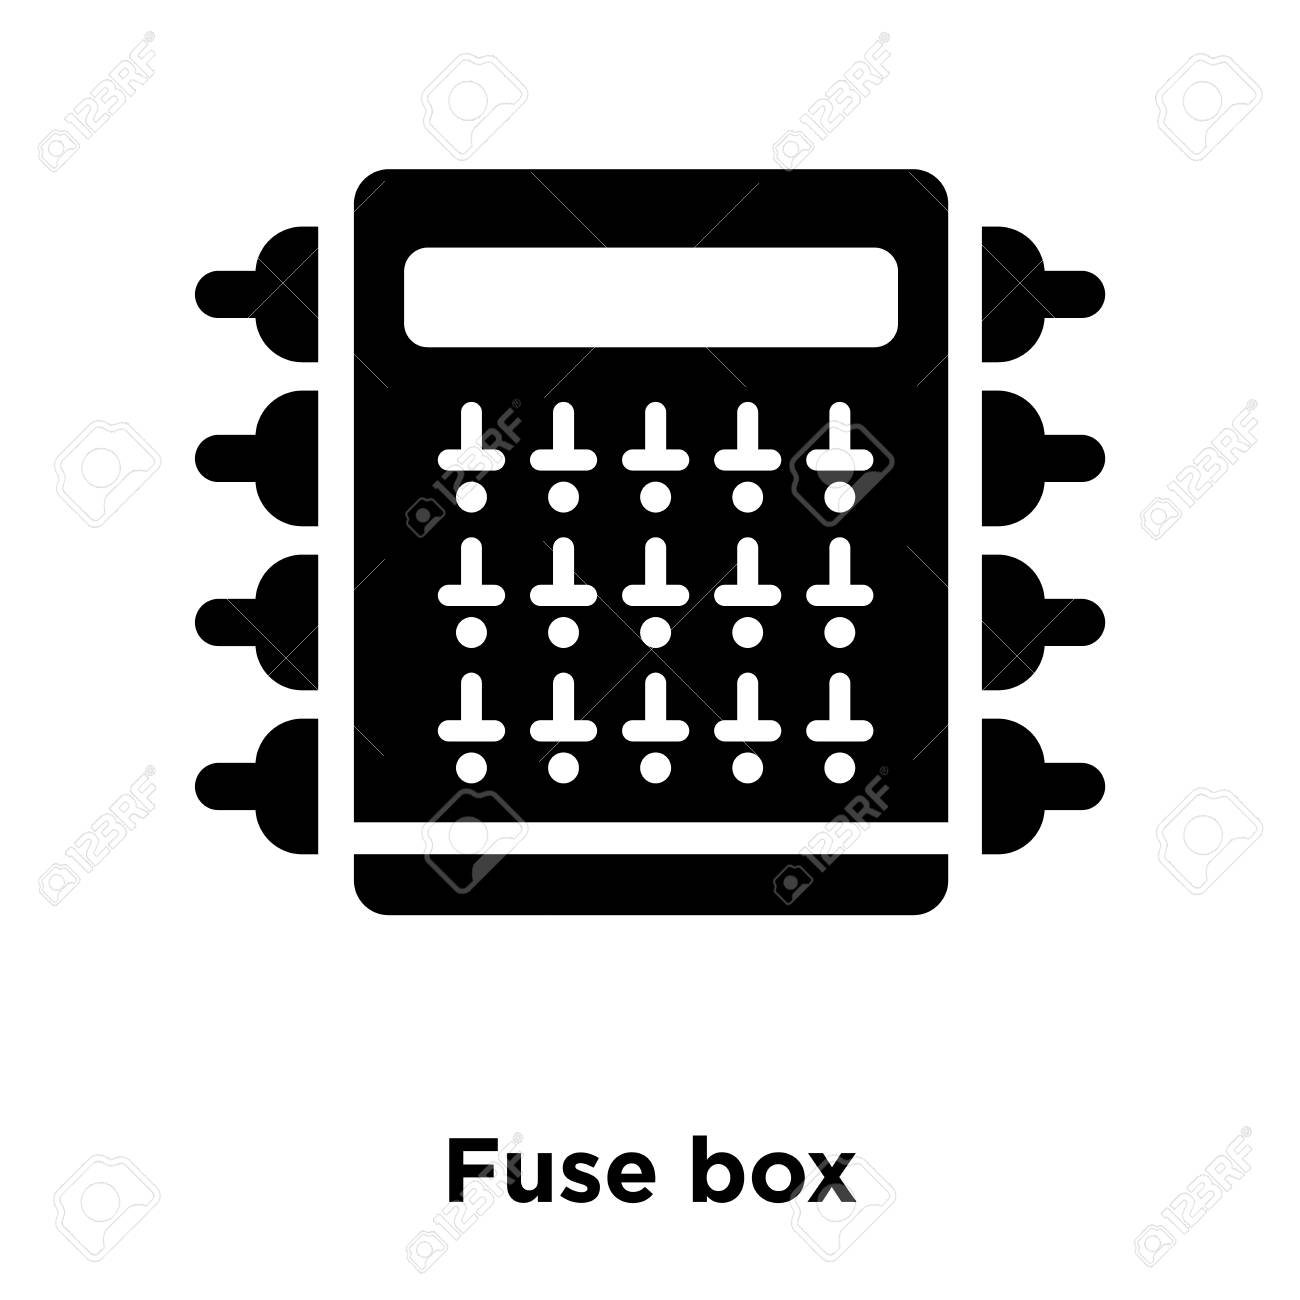 hight resolution of fuse box icon vector isolated on white background logo concept bmw fuse box icons fuse